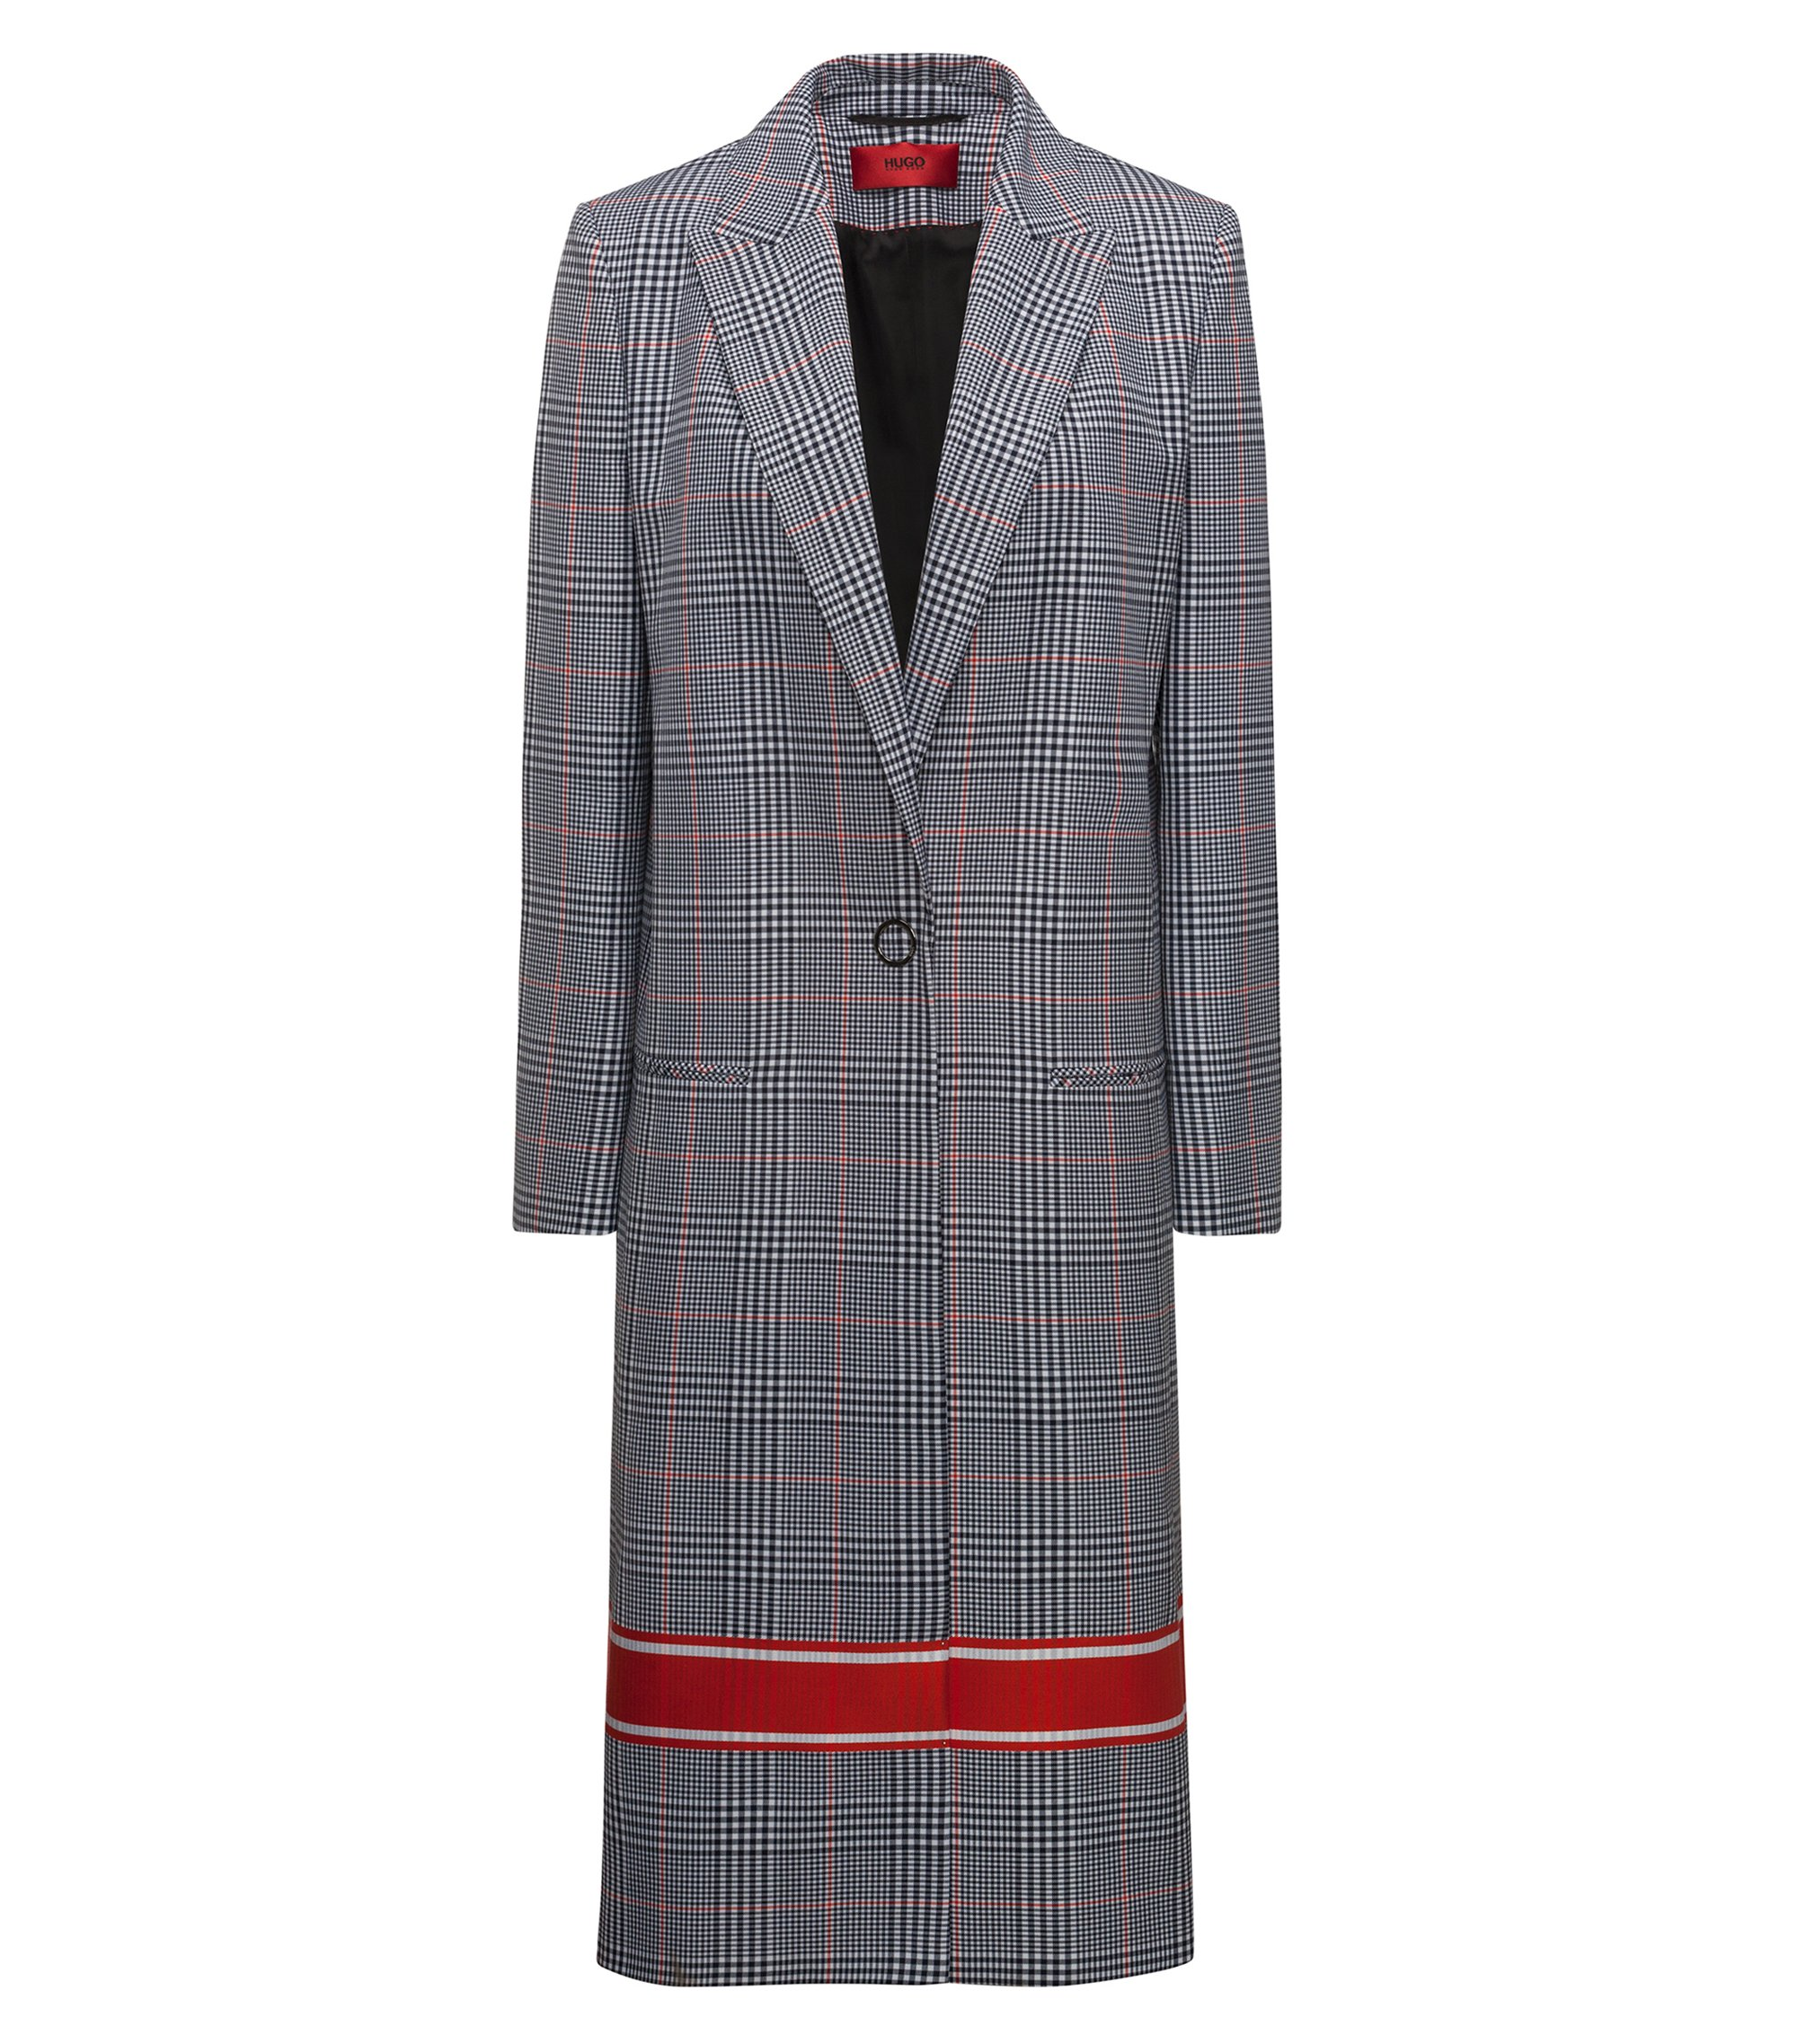 Relaxed-fit coat with plain check and contrast stripe, Patterned